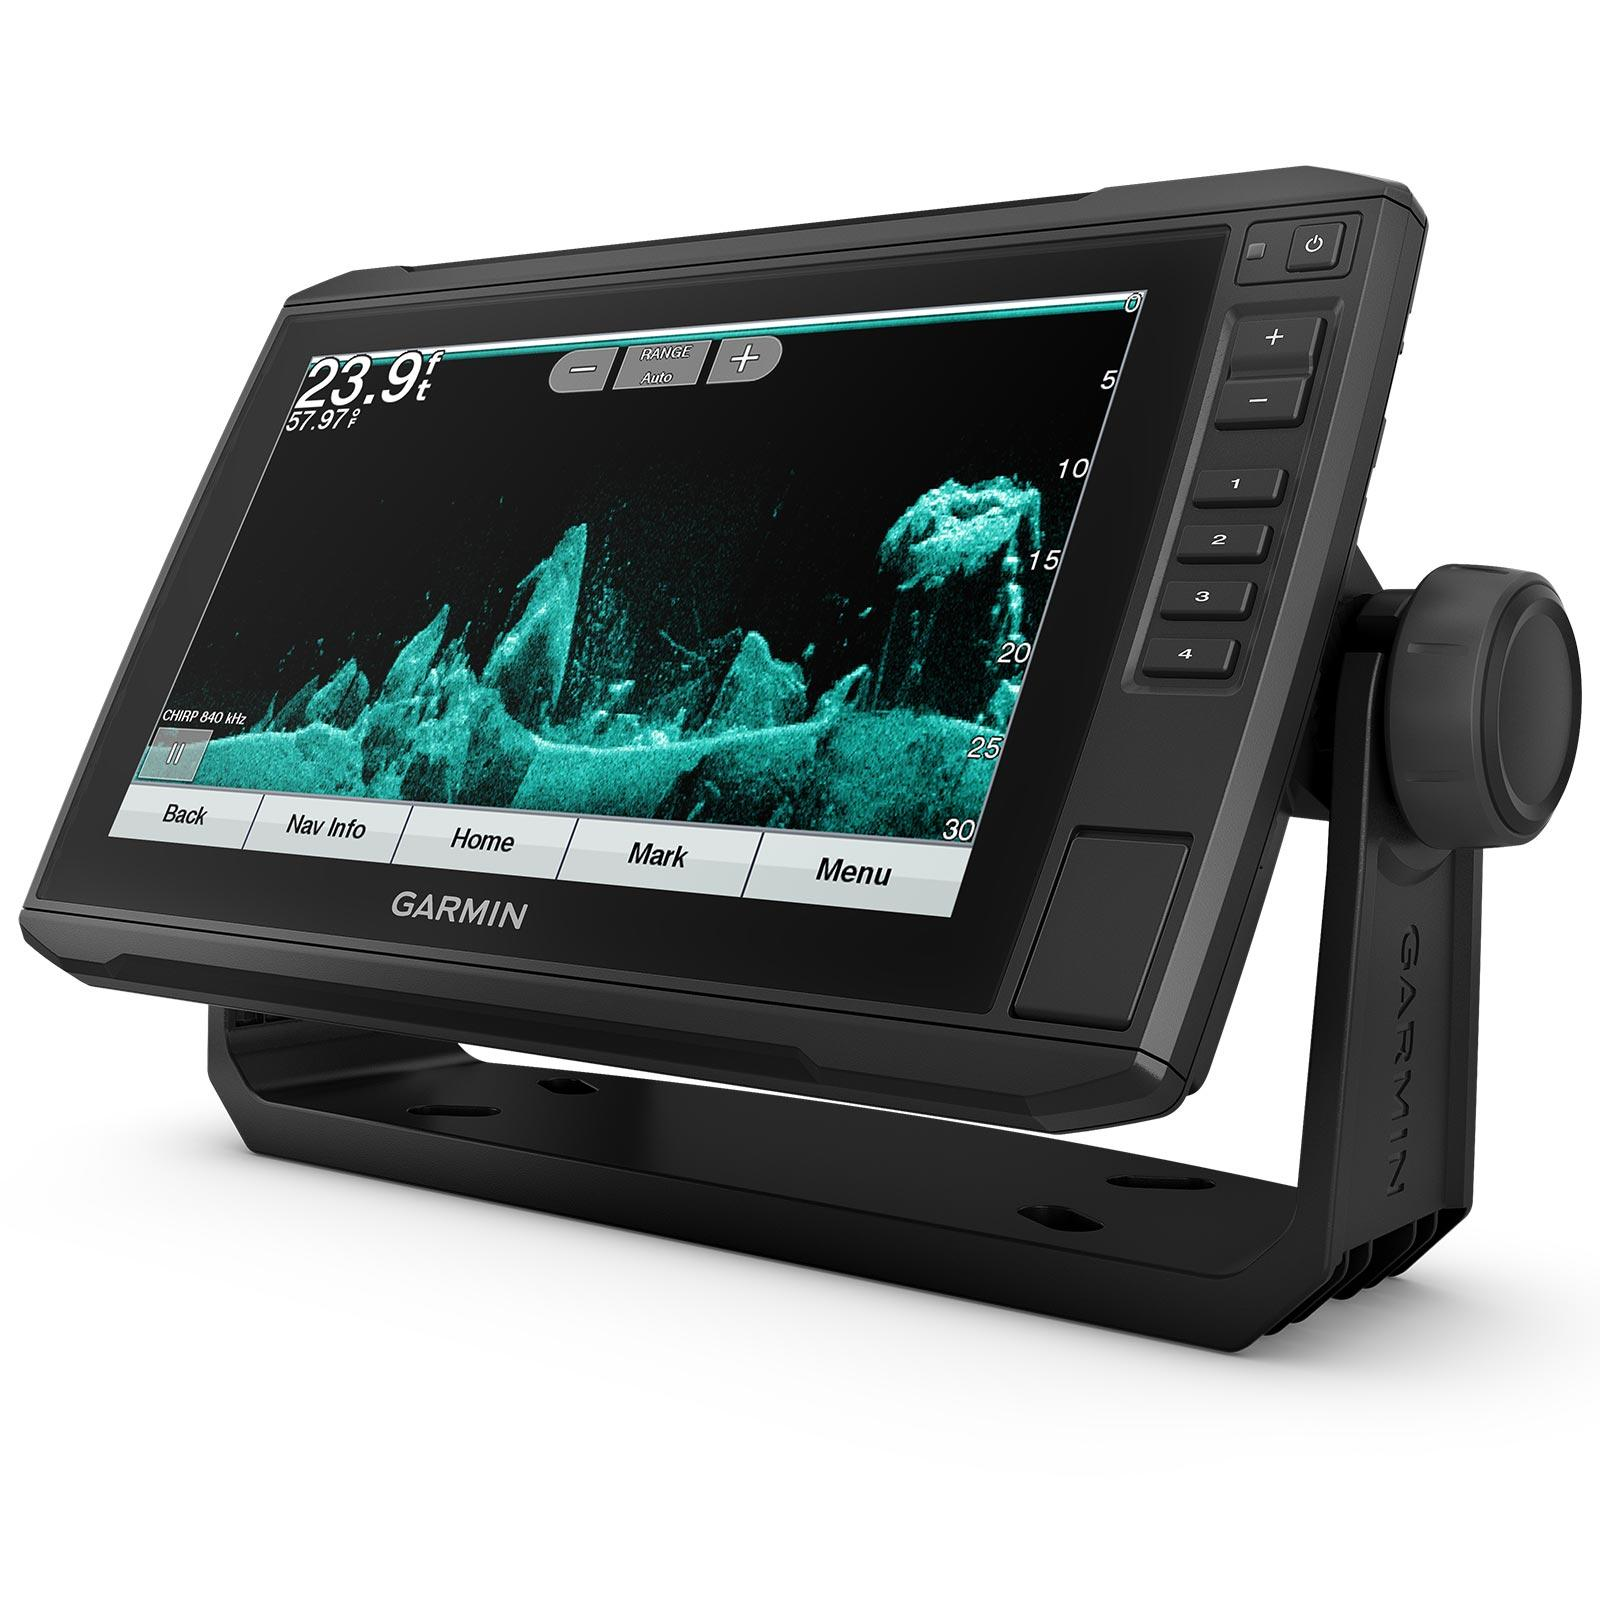 Garmin ECHOMAP UHD 93sv without Transducer Full Screen